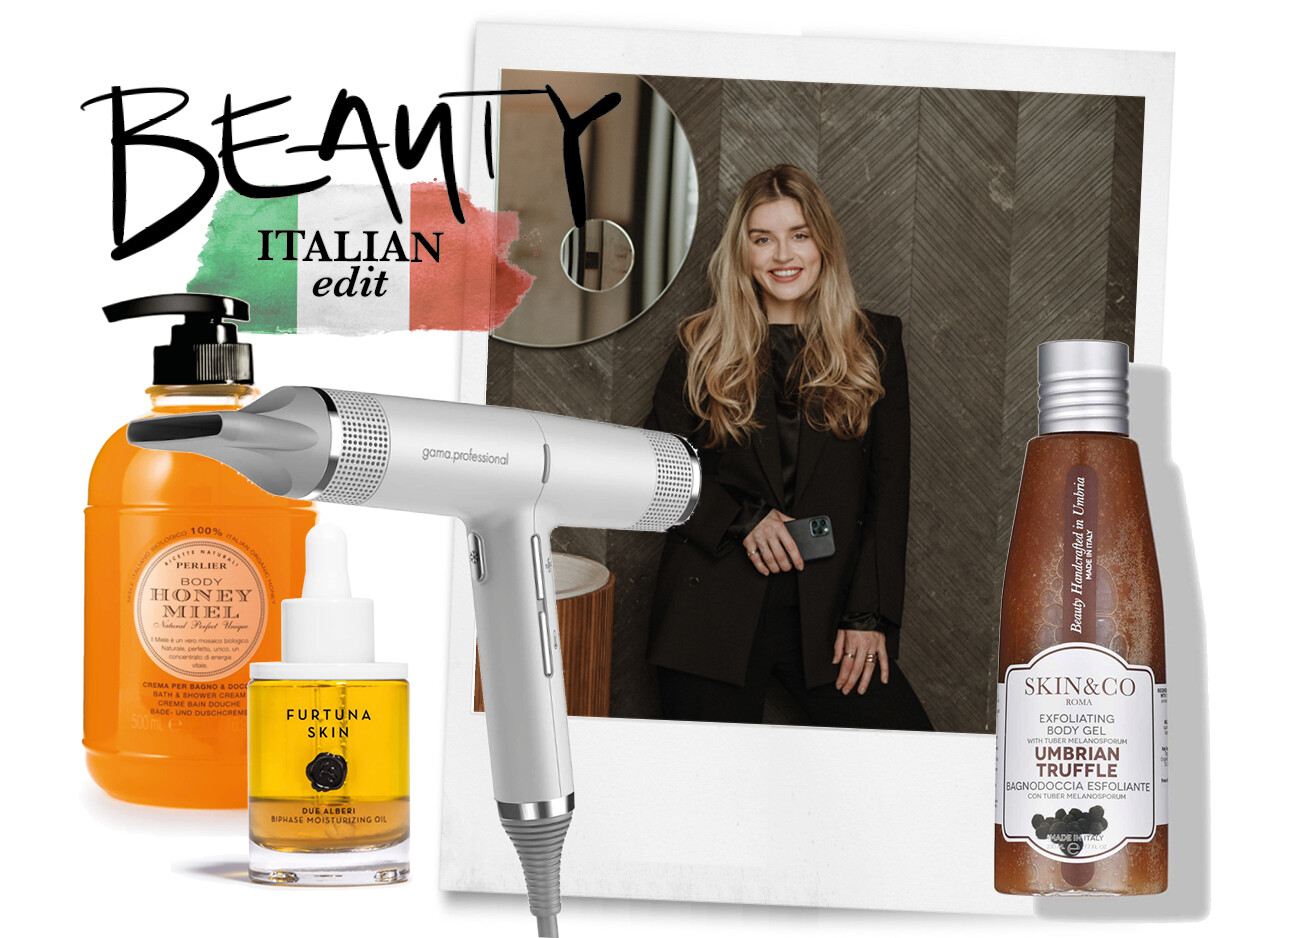 Lotte van scherpenzeel italiaanse beauty items alexander Sporre